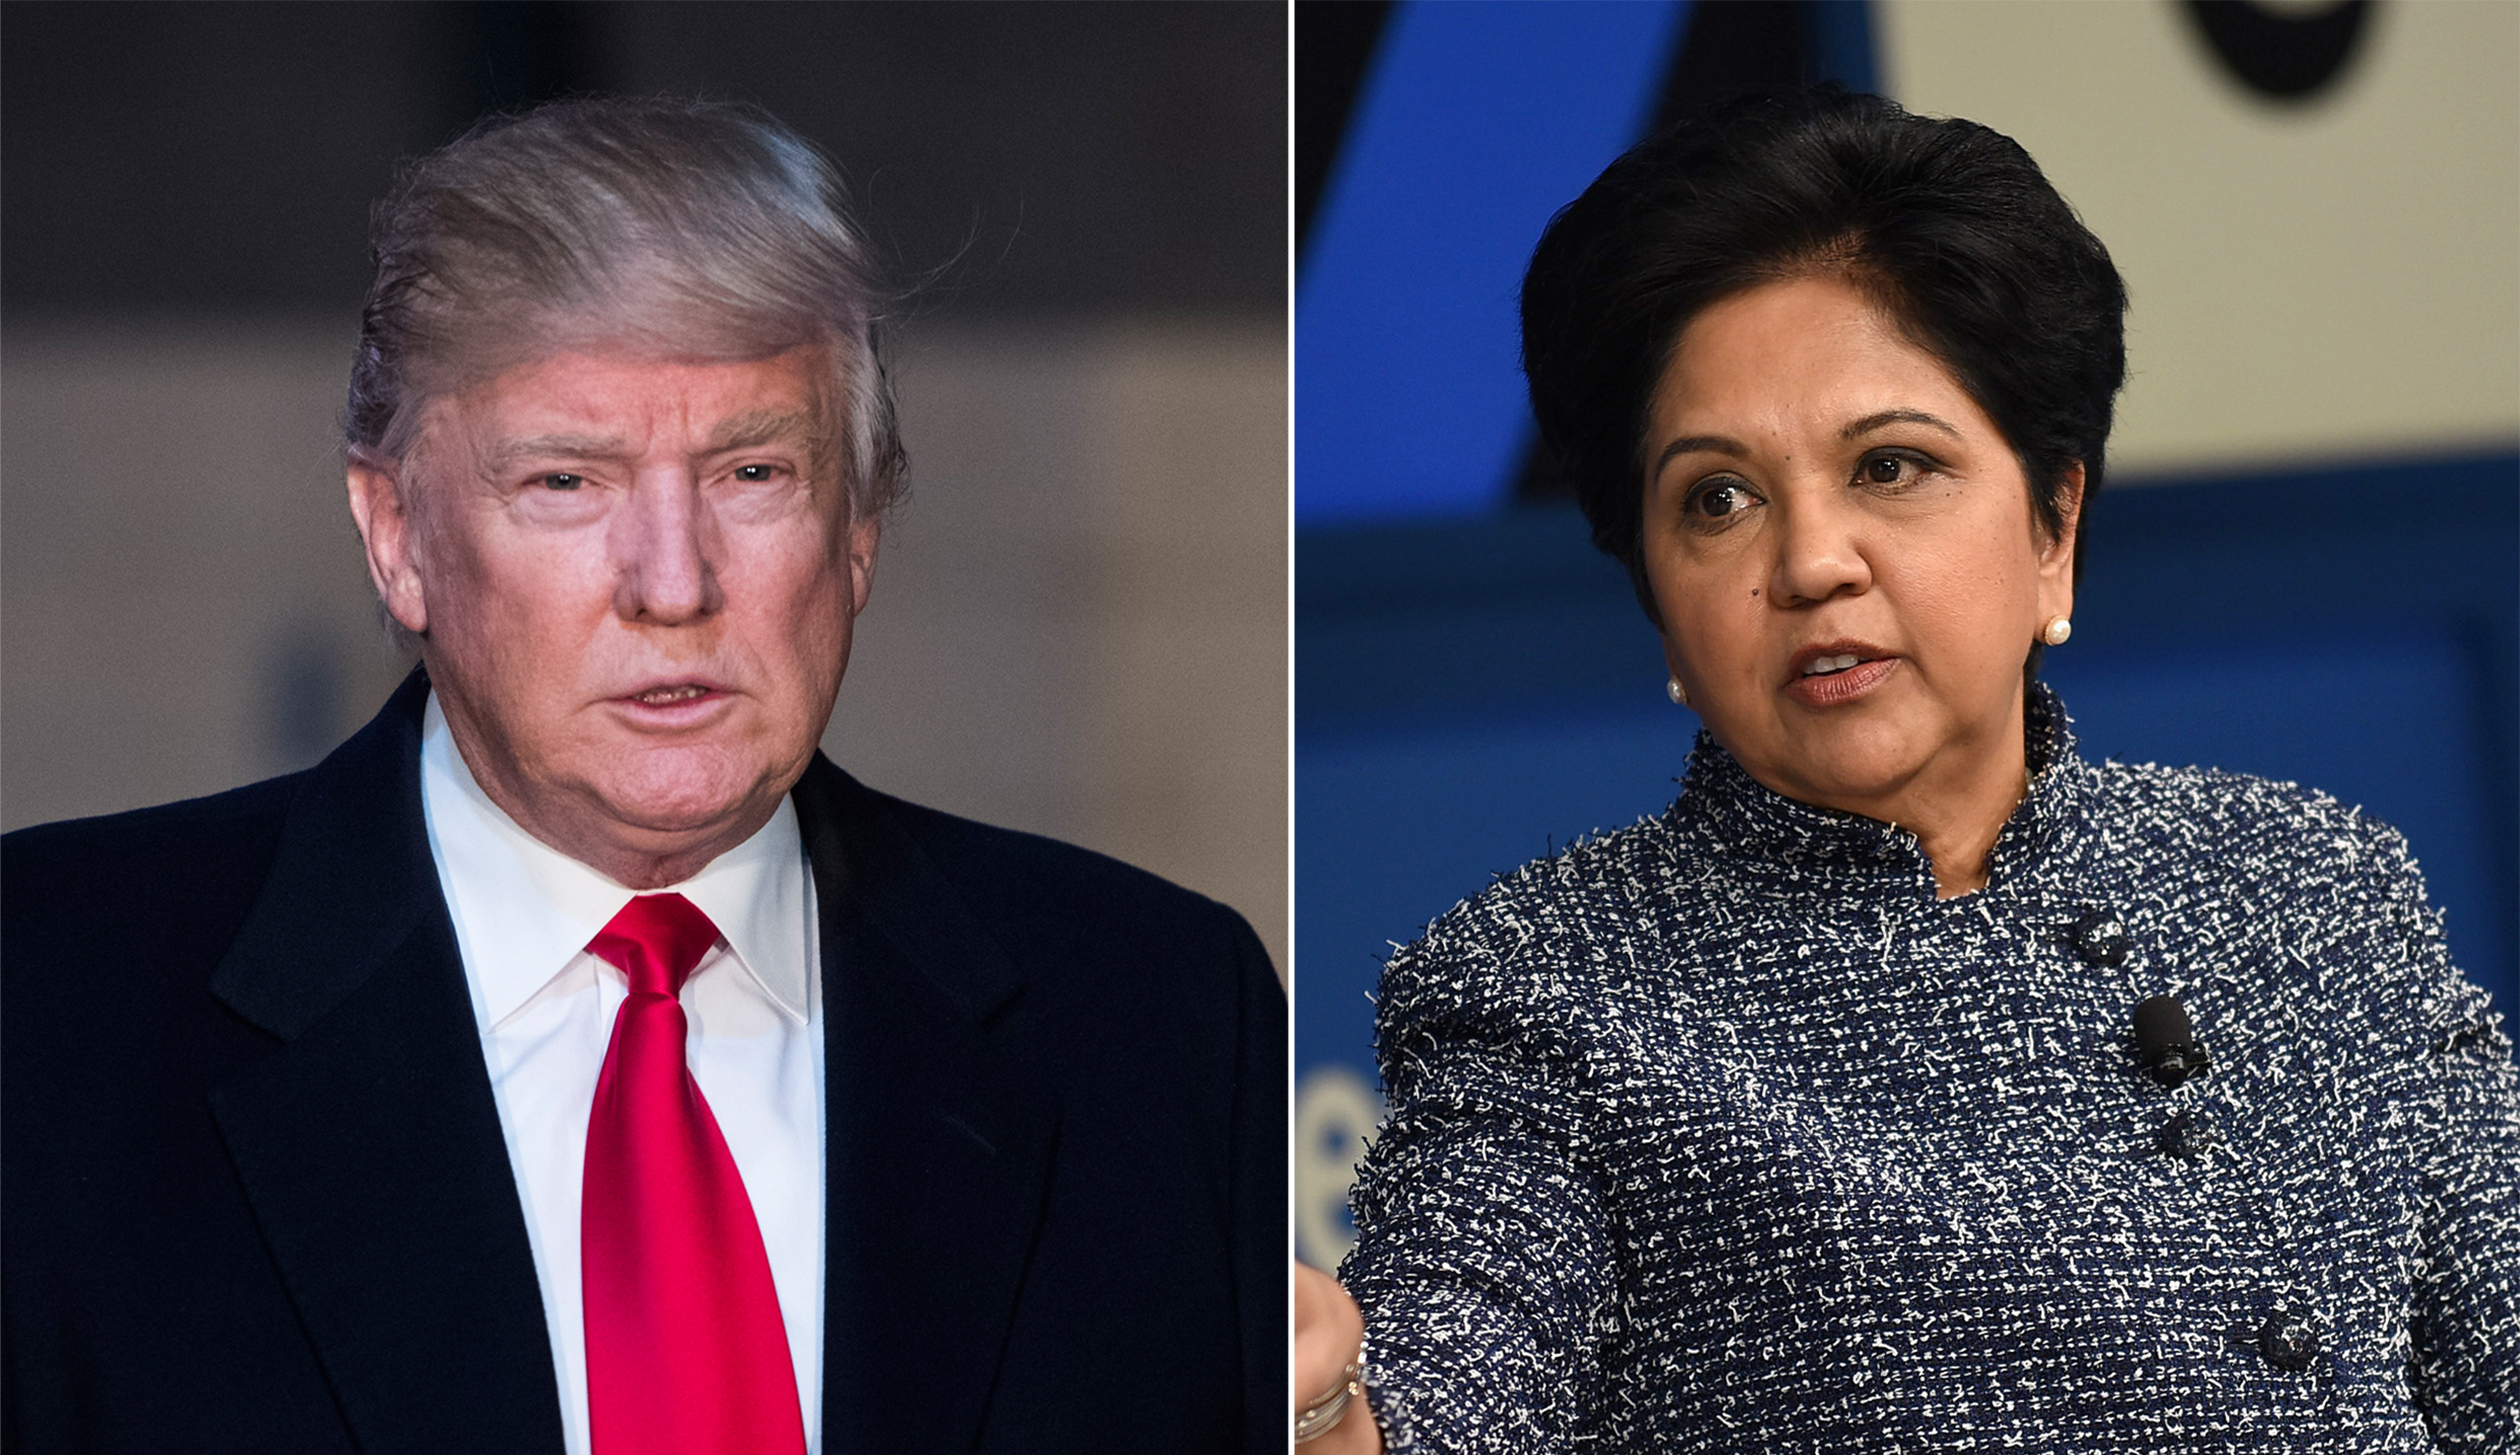 President-elect Donald Trump, left, and Chairman and CEO of PepsiCo Indra Nooyi, right.